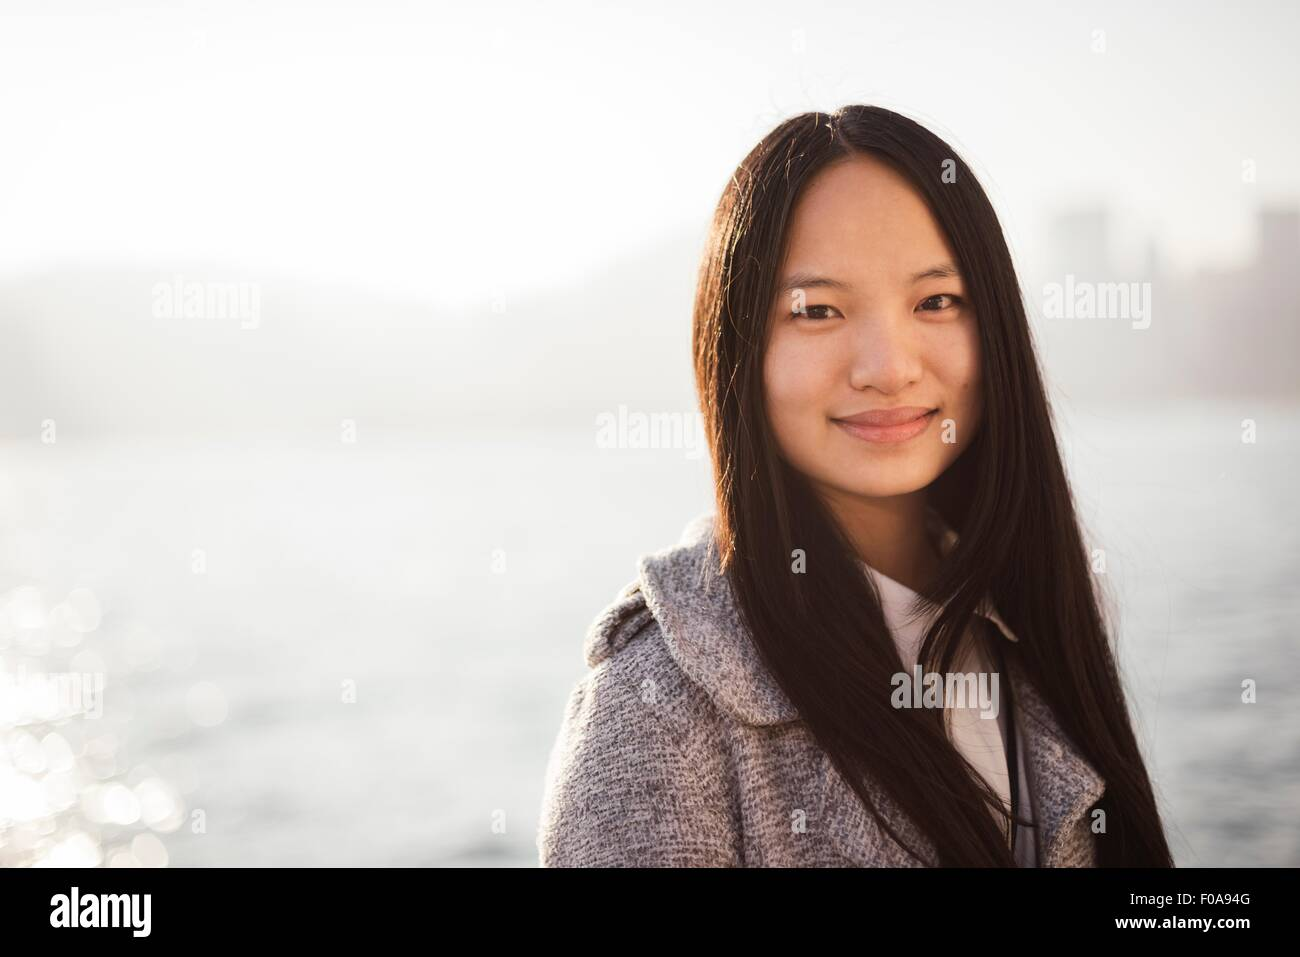 Portrait of young woman with long brunette hair in centre parting looking at camera smiling - Stock Image